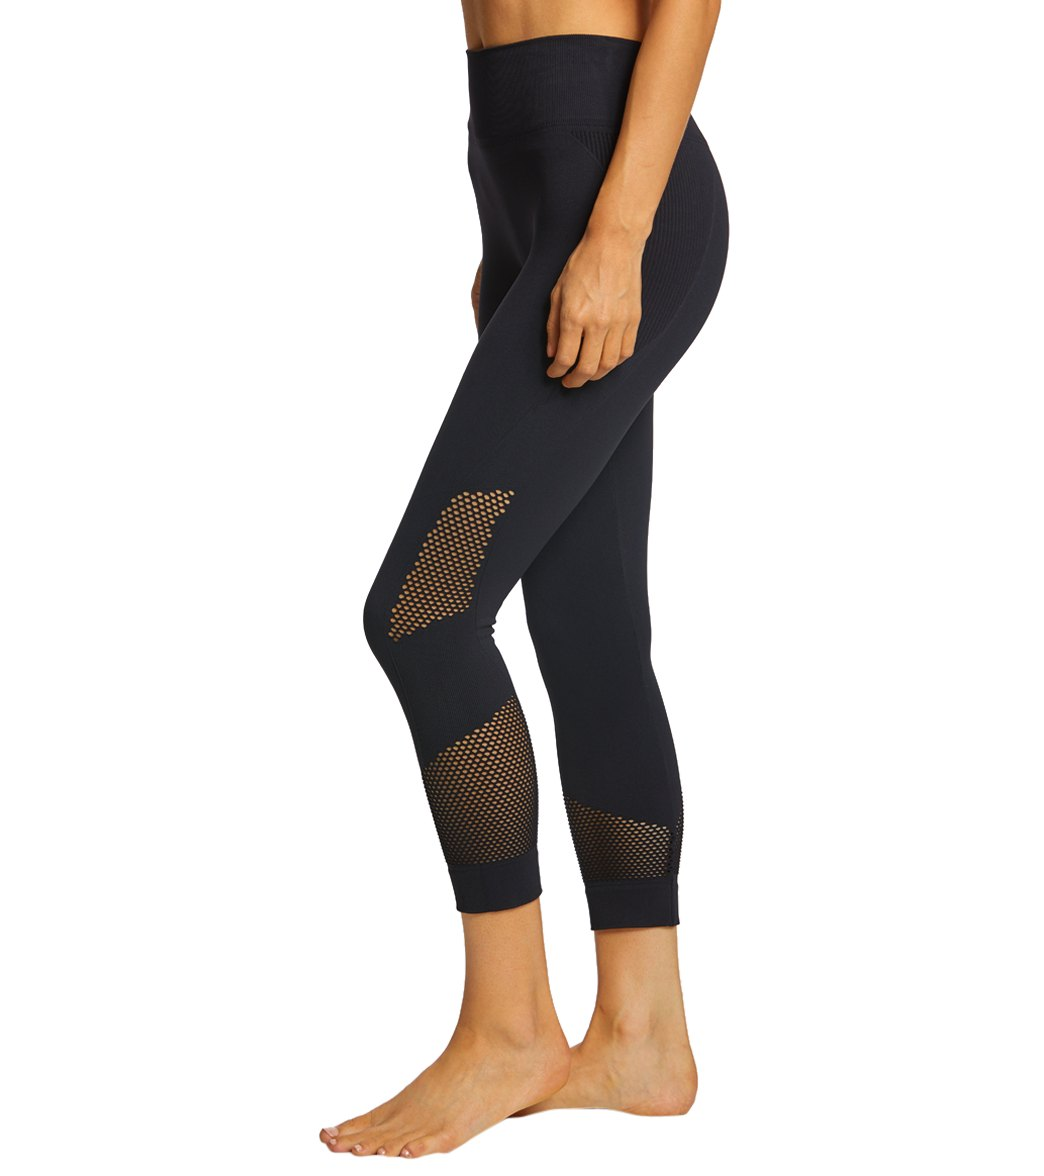 NUX Network Seamless Yoga Capri Pants - Black Spandex